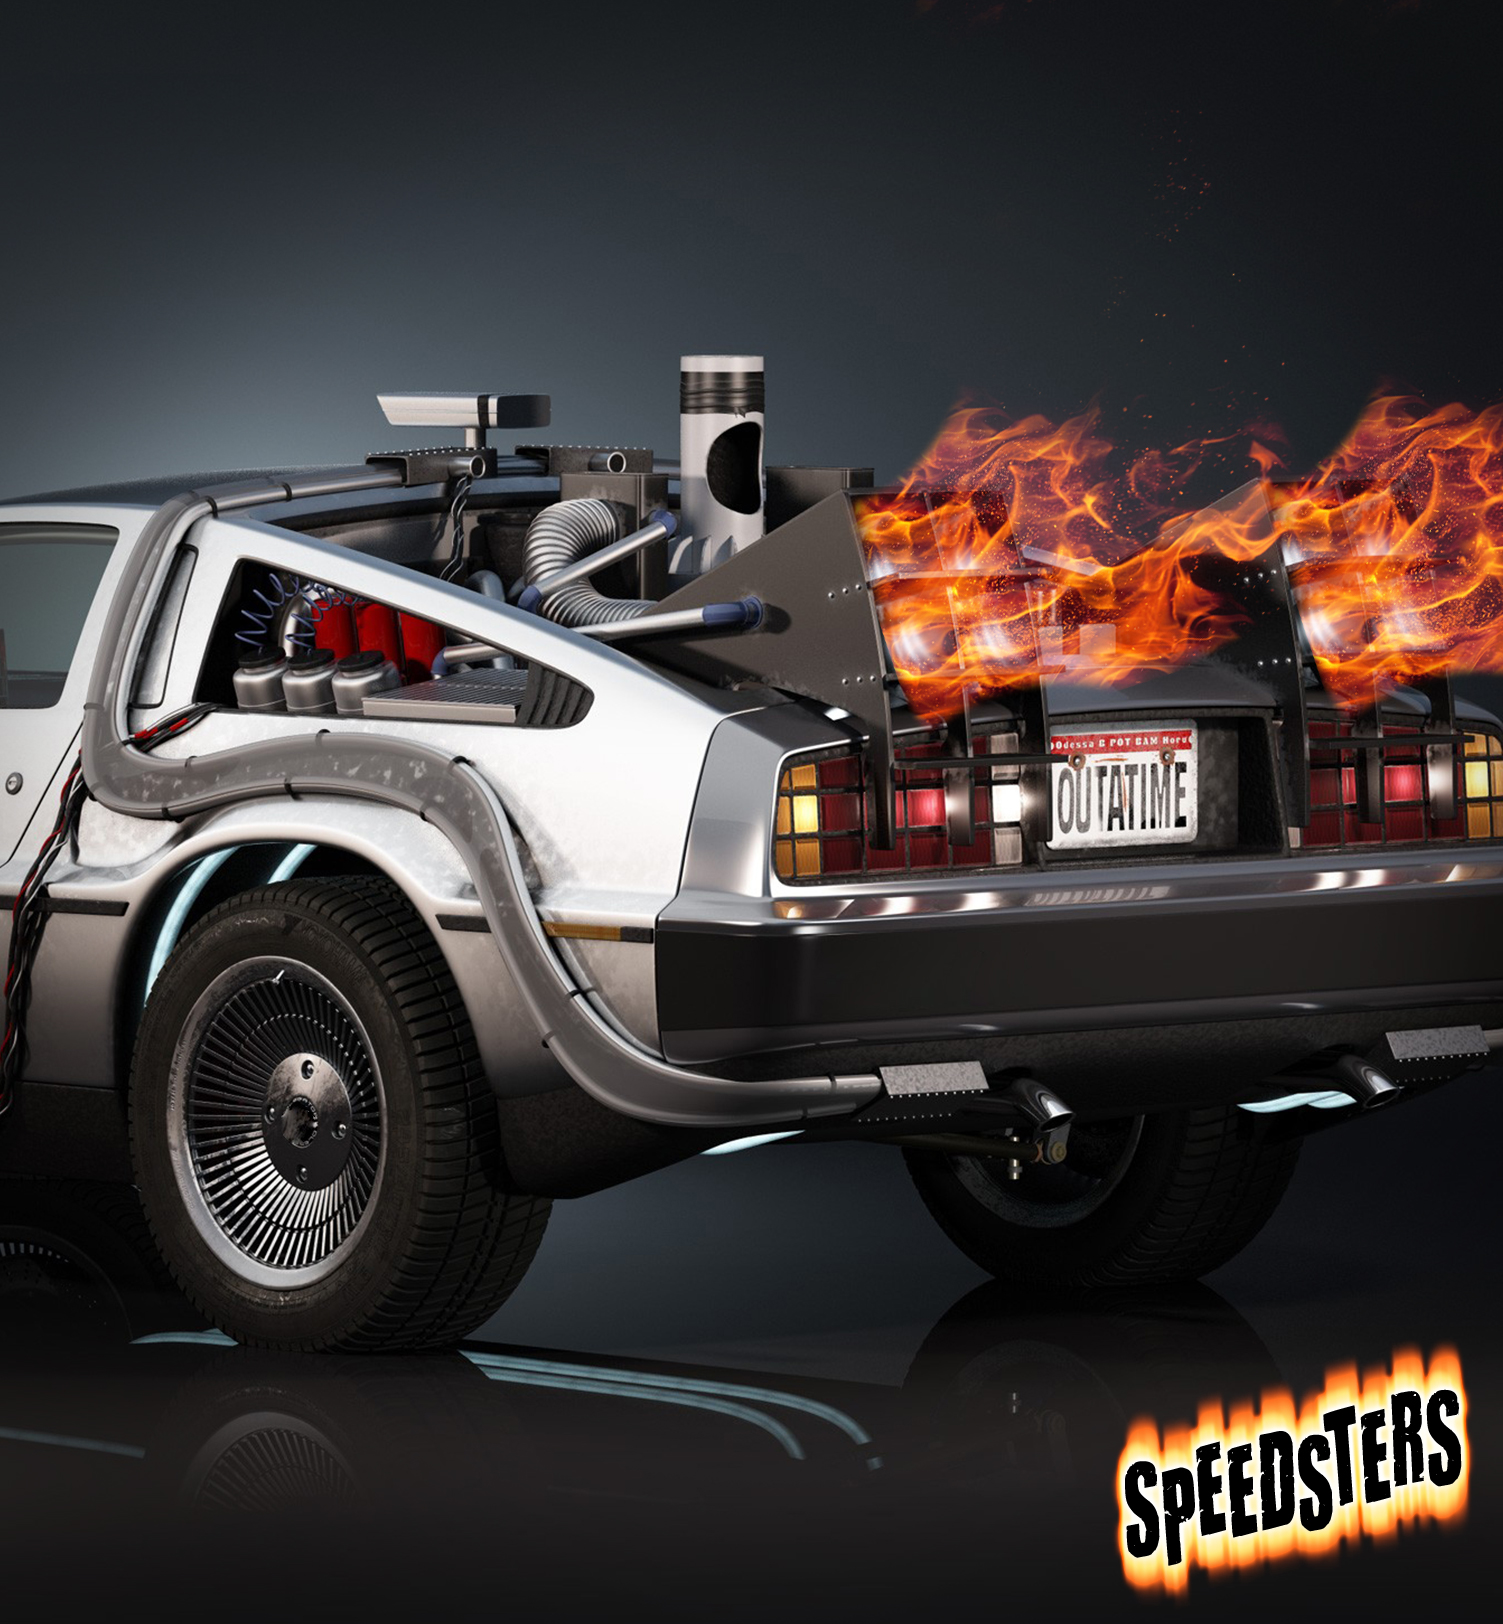 SP-FB-delorean